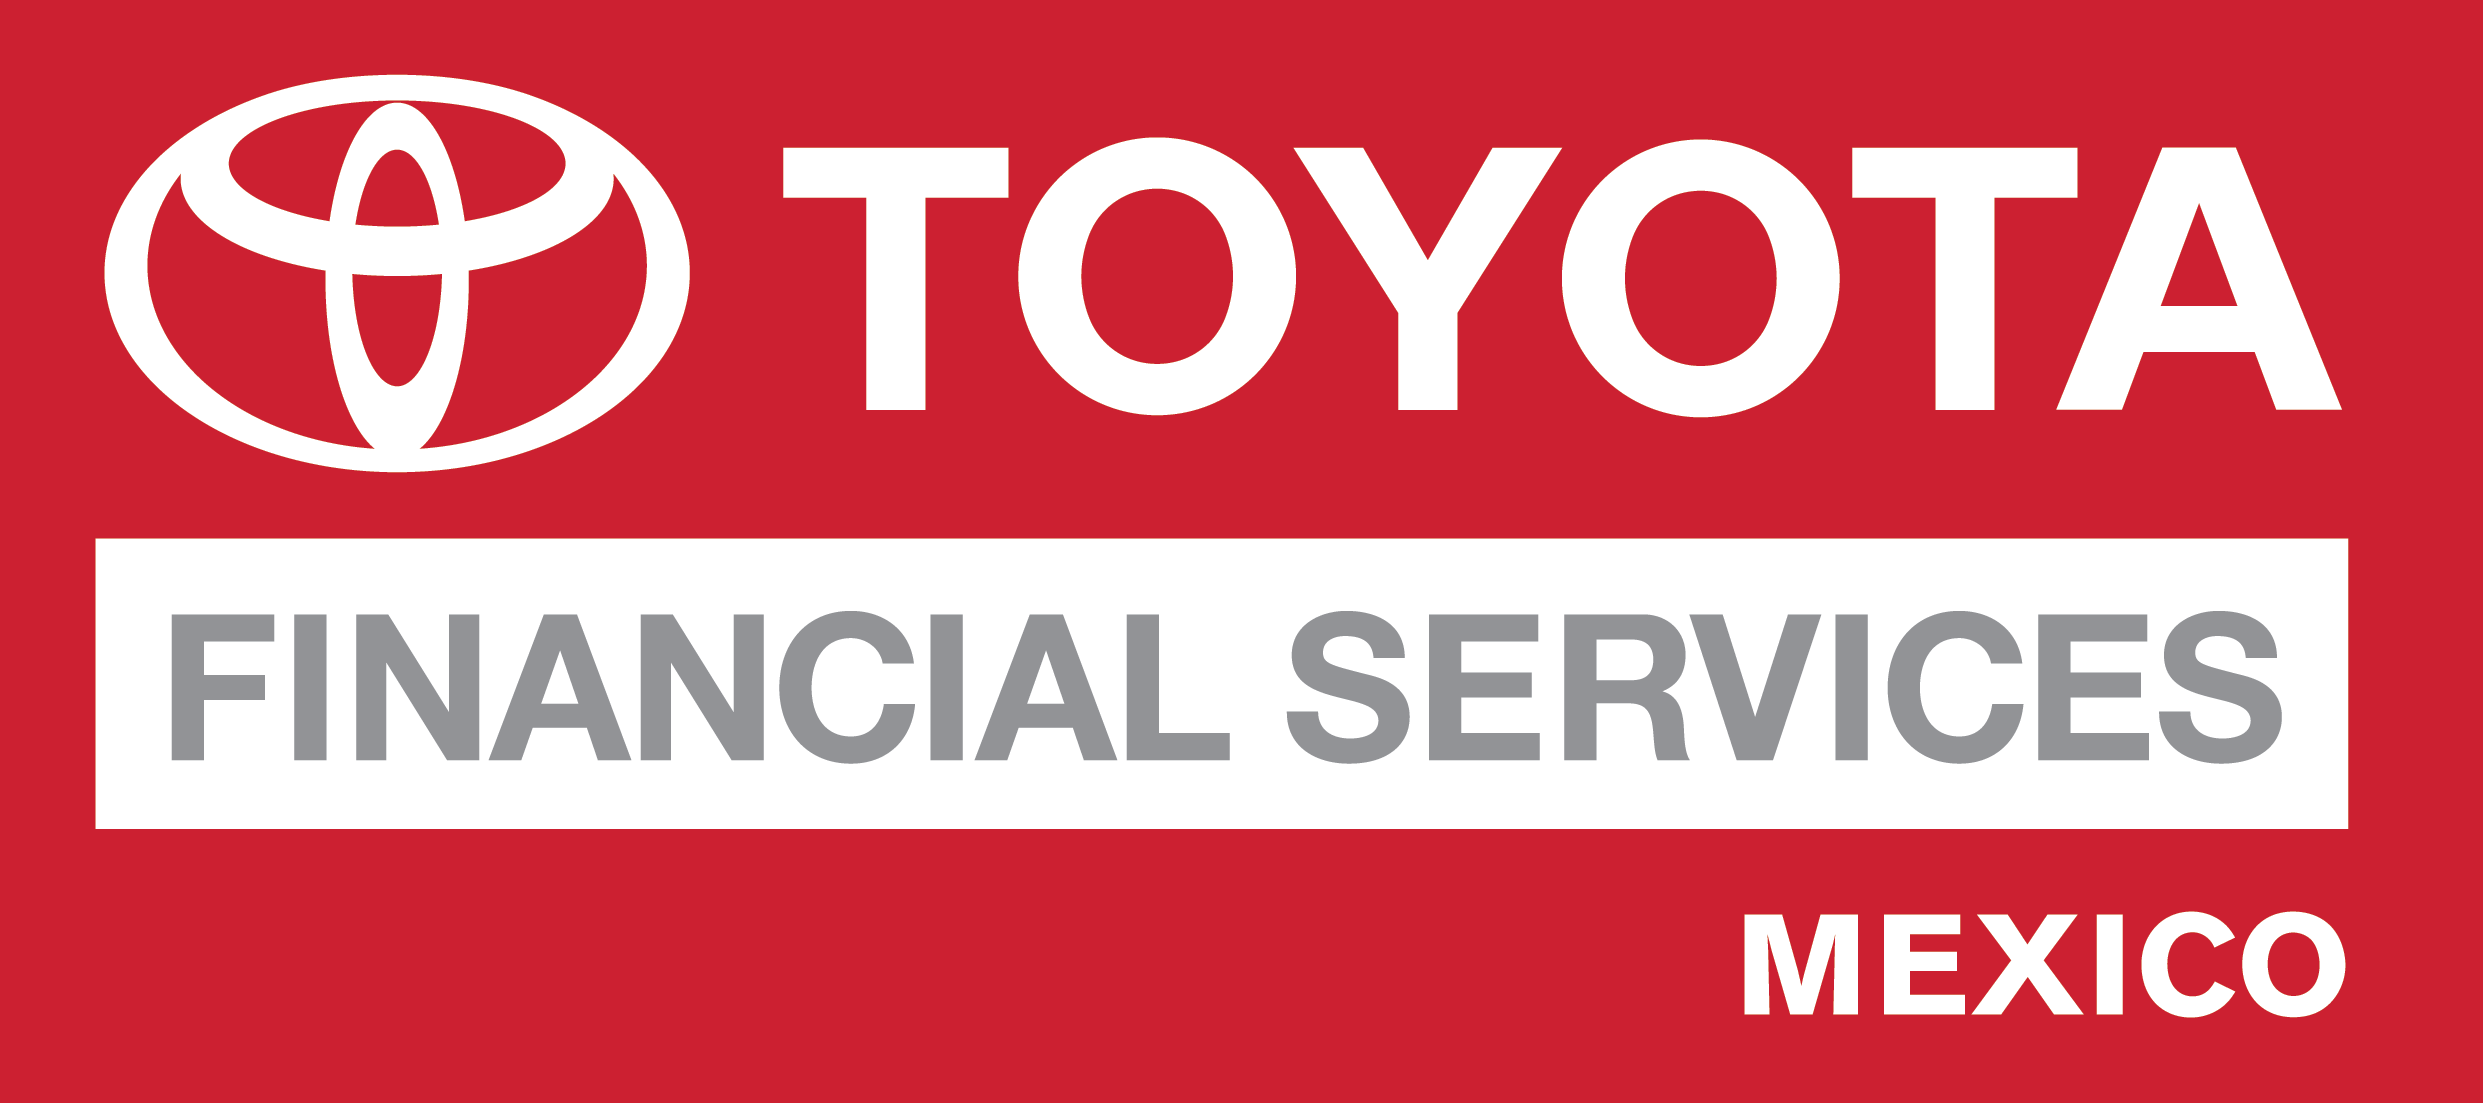 Toyota Financial Services México